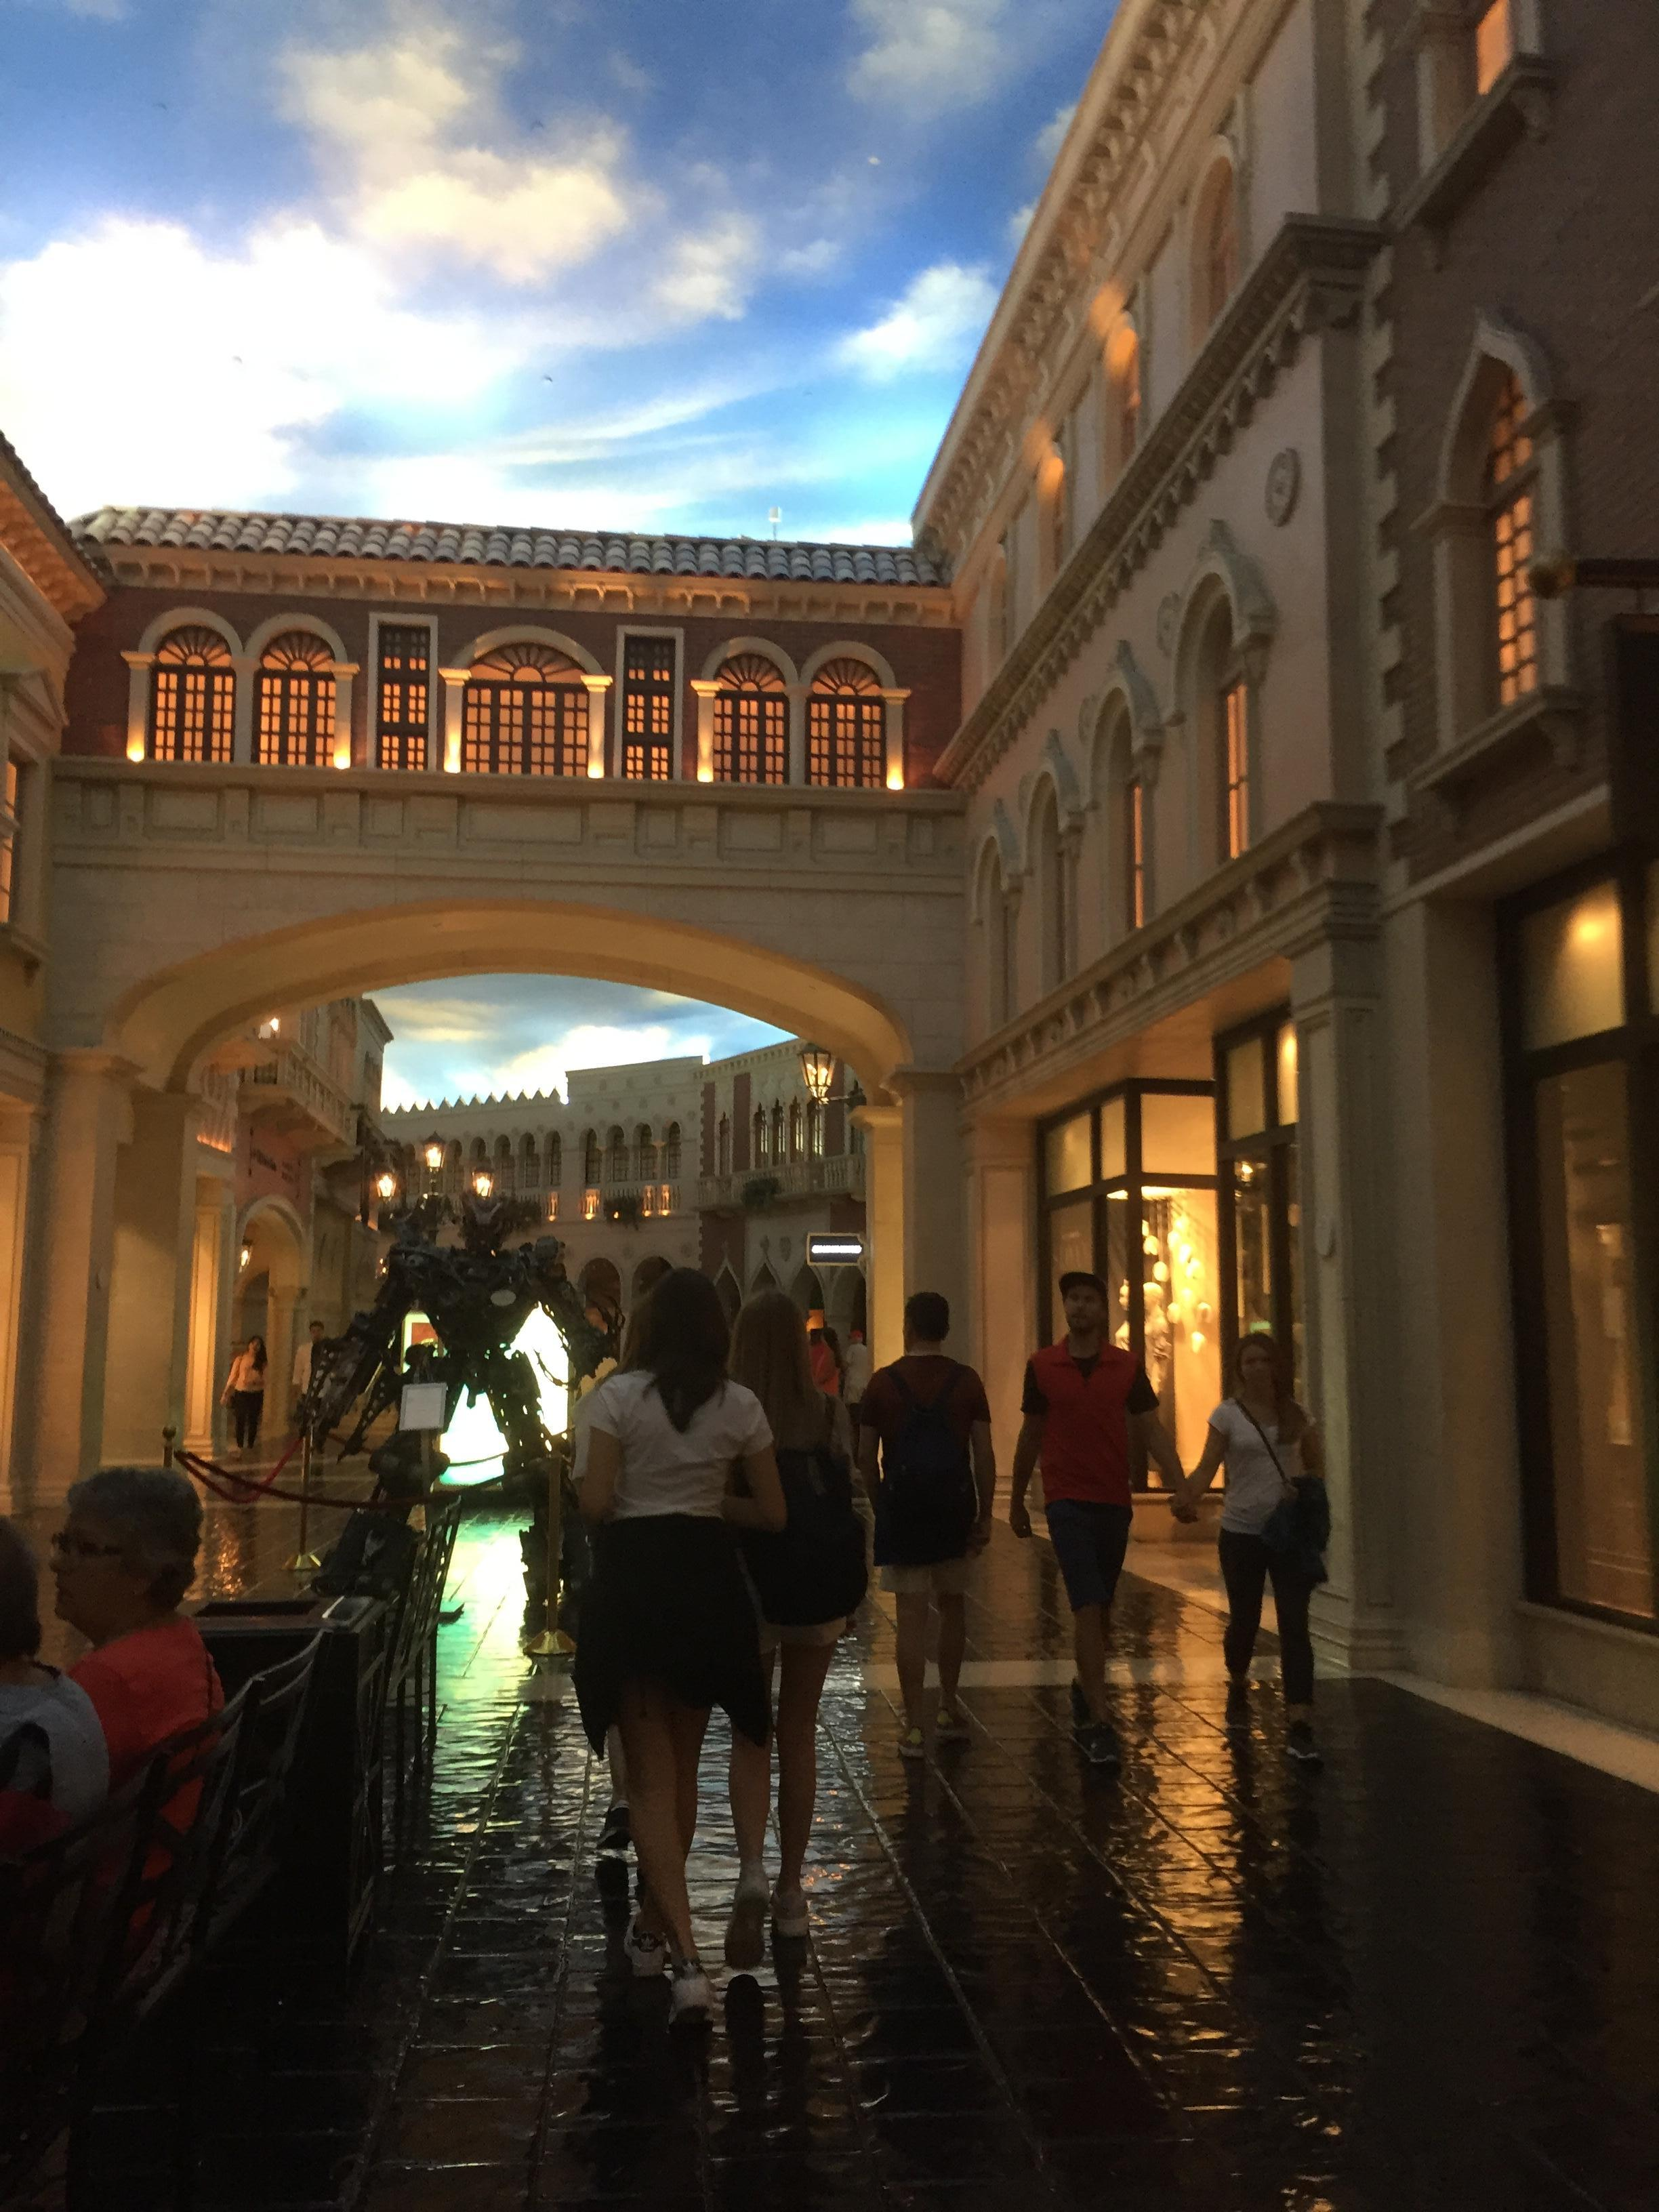 The venetian las vegas hotel deals - What Can I Say From The Minute We Arrived The Staff Were So Lovely And Helpful Anything We Needed We Got Or Questions We Asked Were Answered